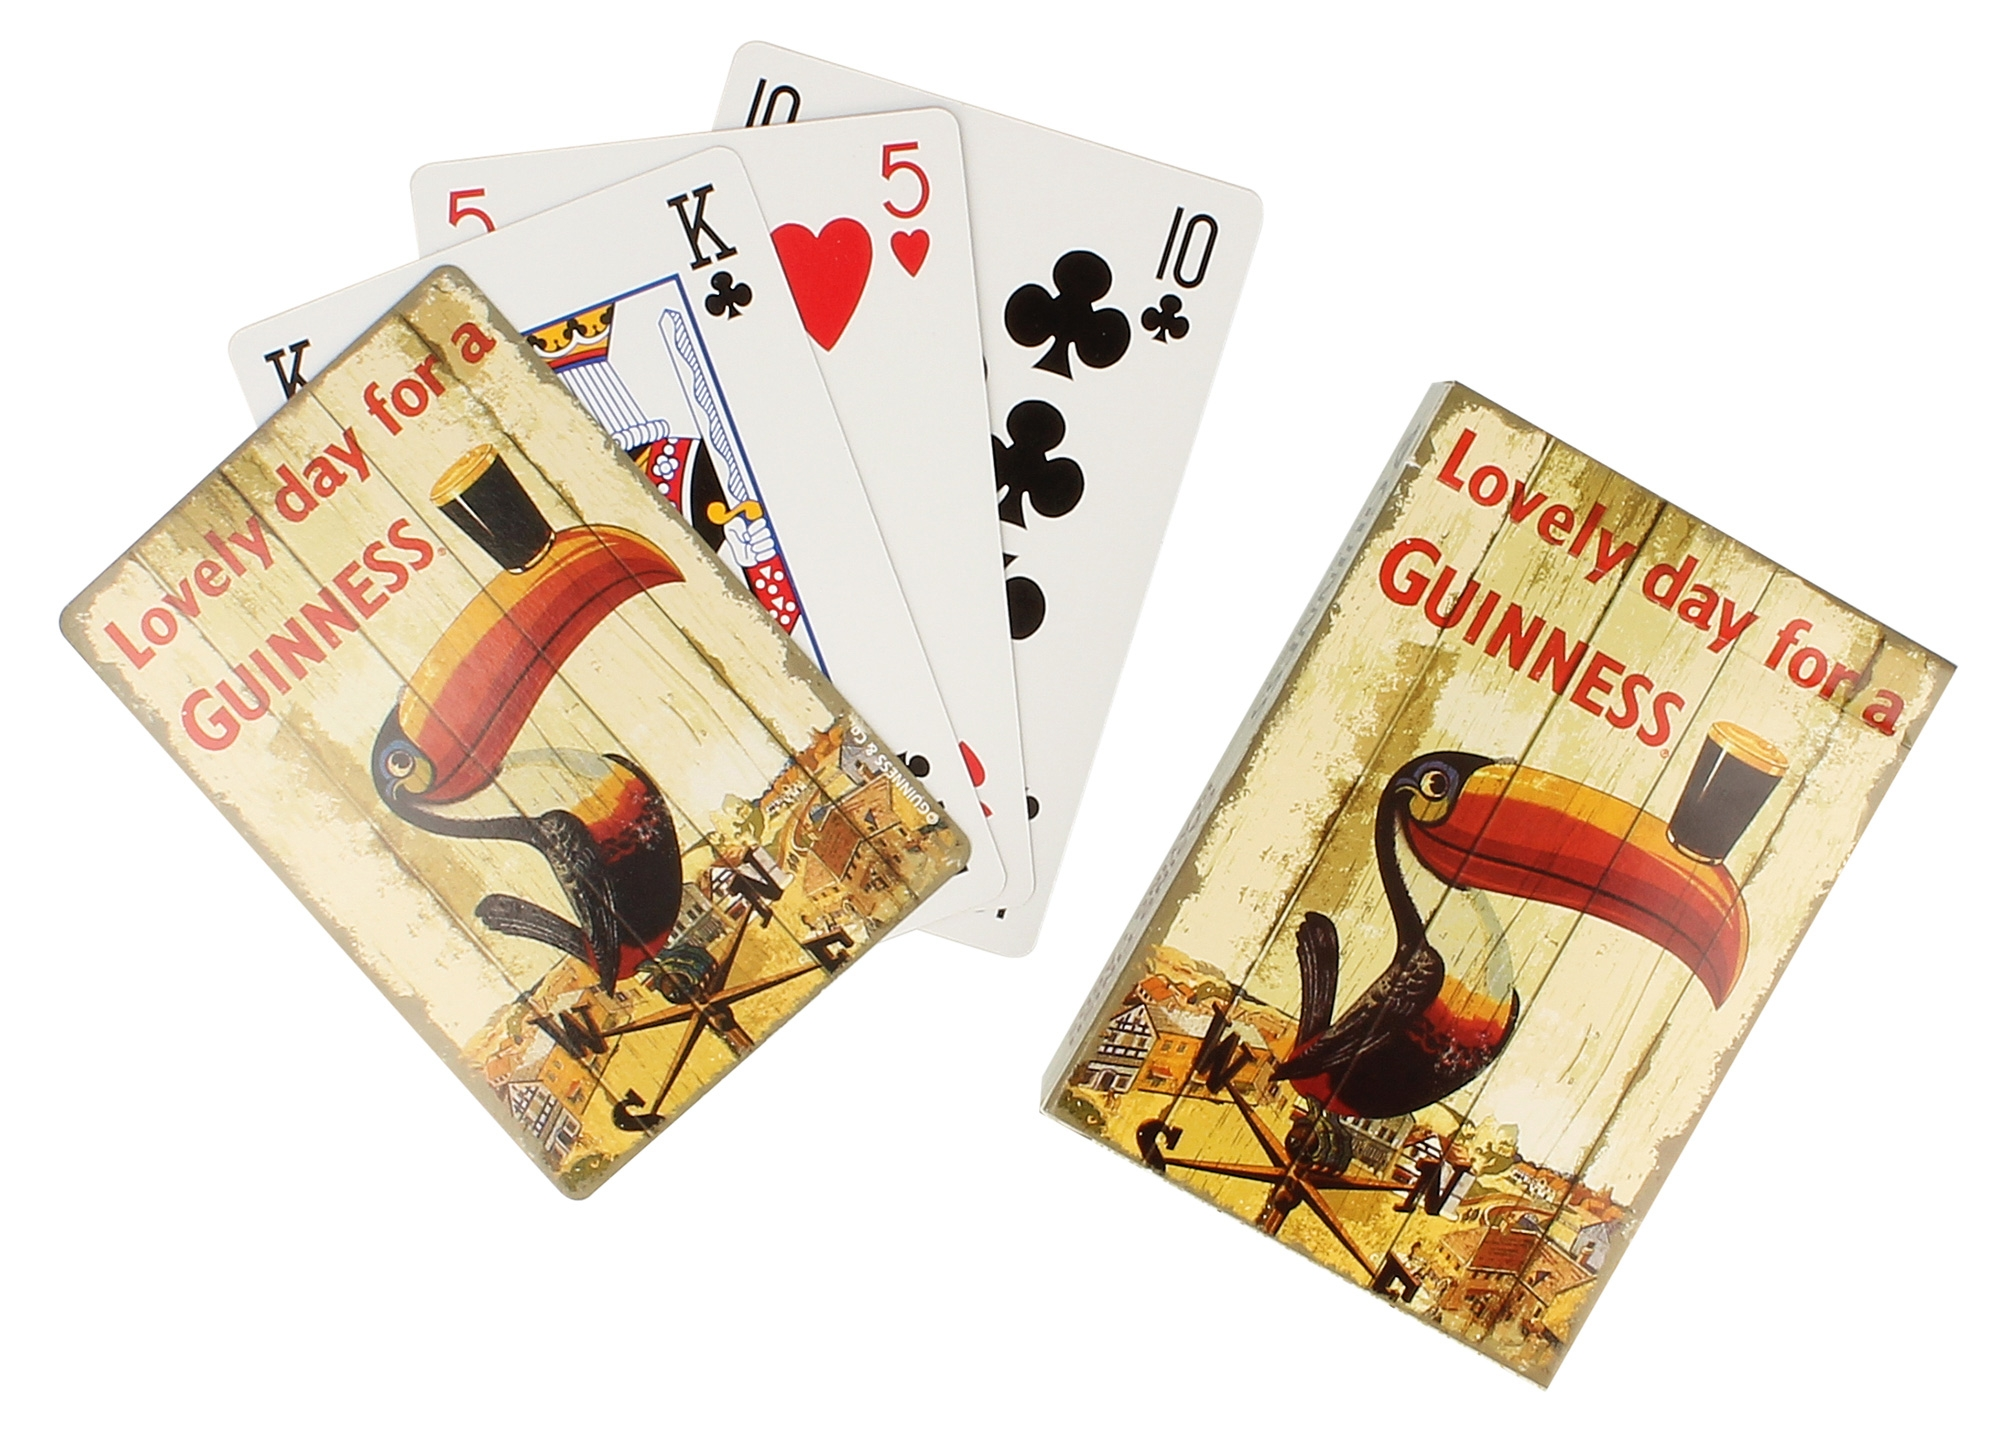 Playing Cards Cayman Islands Playing Cards Vintage Playing Cards 1970/'s Playing Cards Cayman Islands Playing Cards